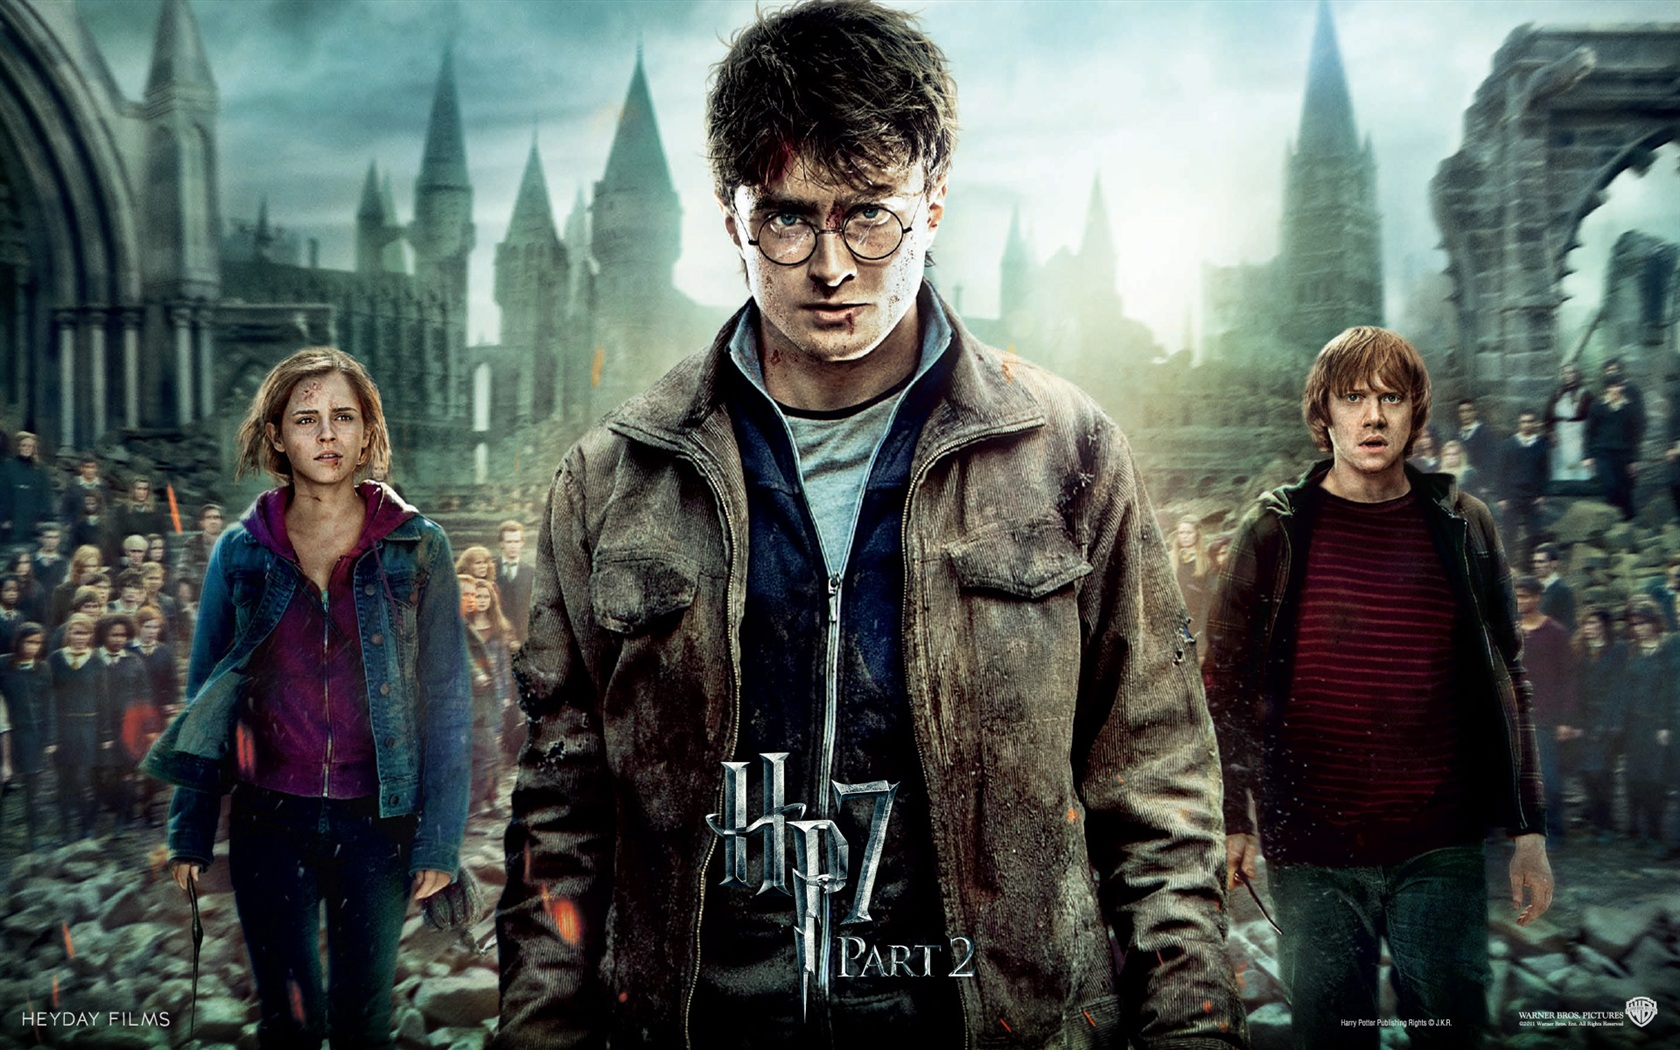 HP7 Part 2 Hero wallpaper - 1680x1050